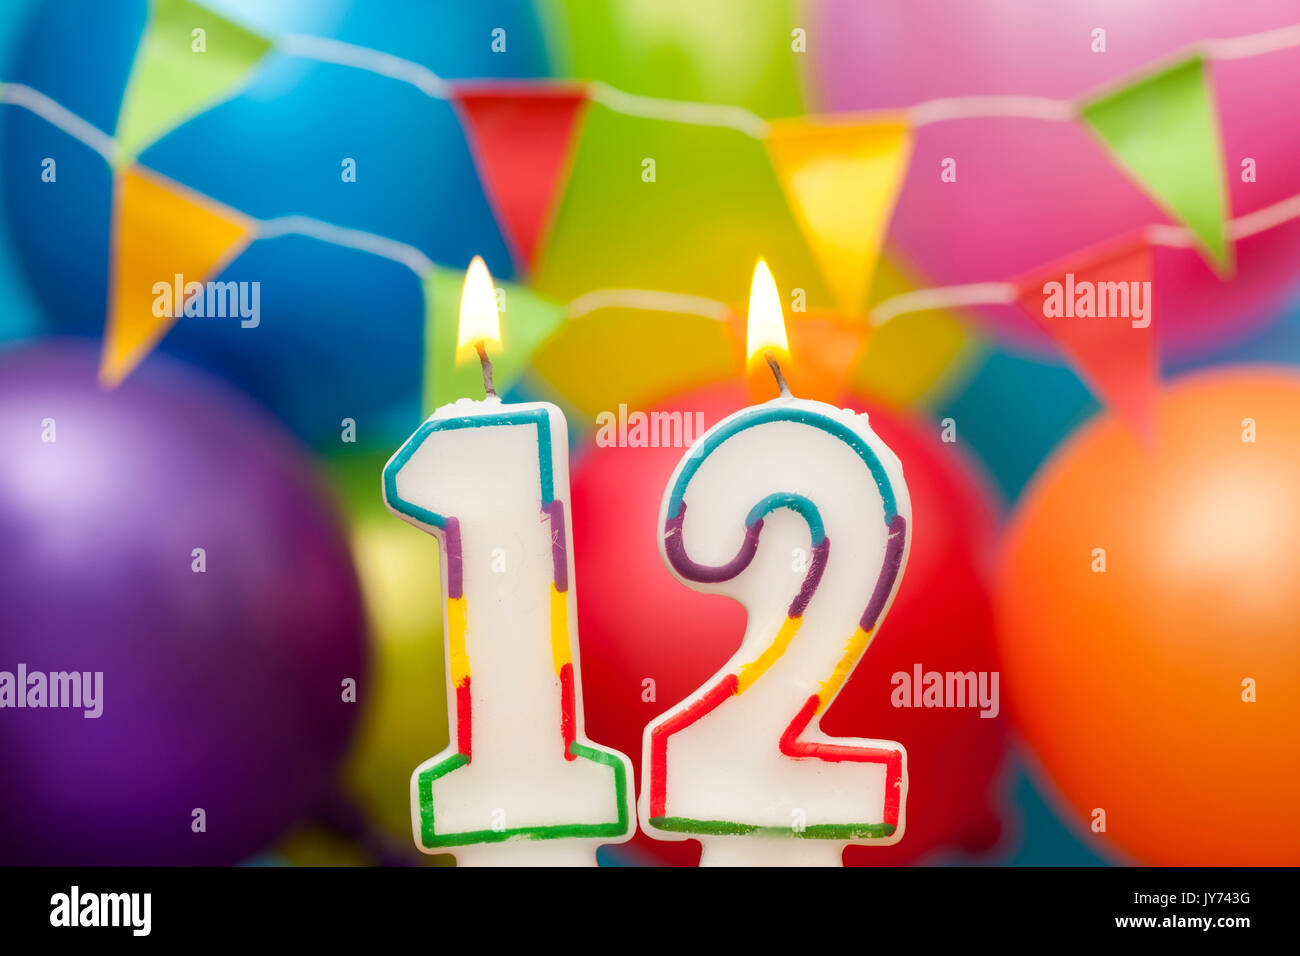 Happy Birthday Number 12 Celebration Candle With Colorful Balloons And Bunting